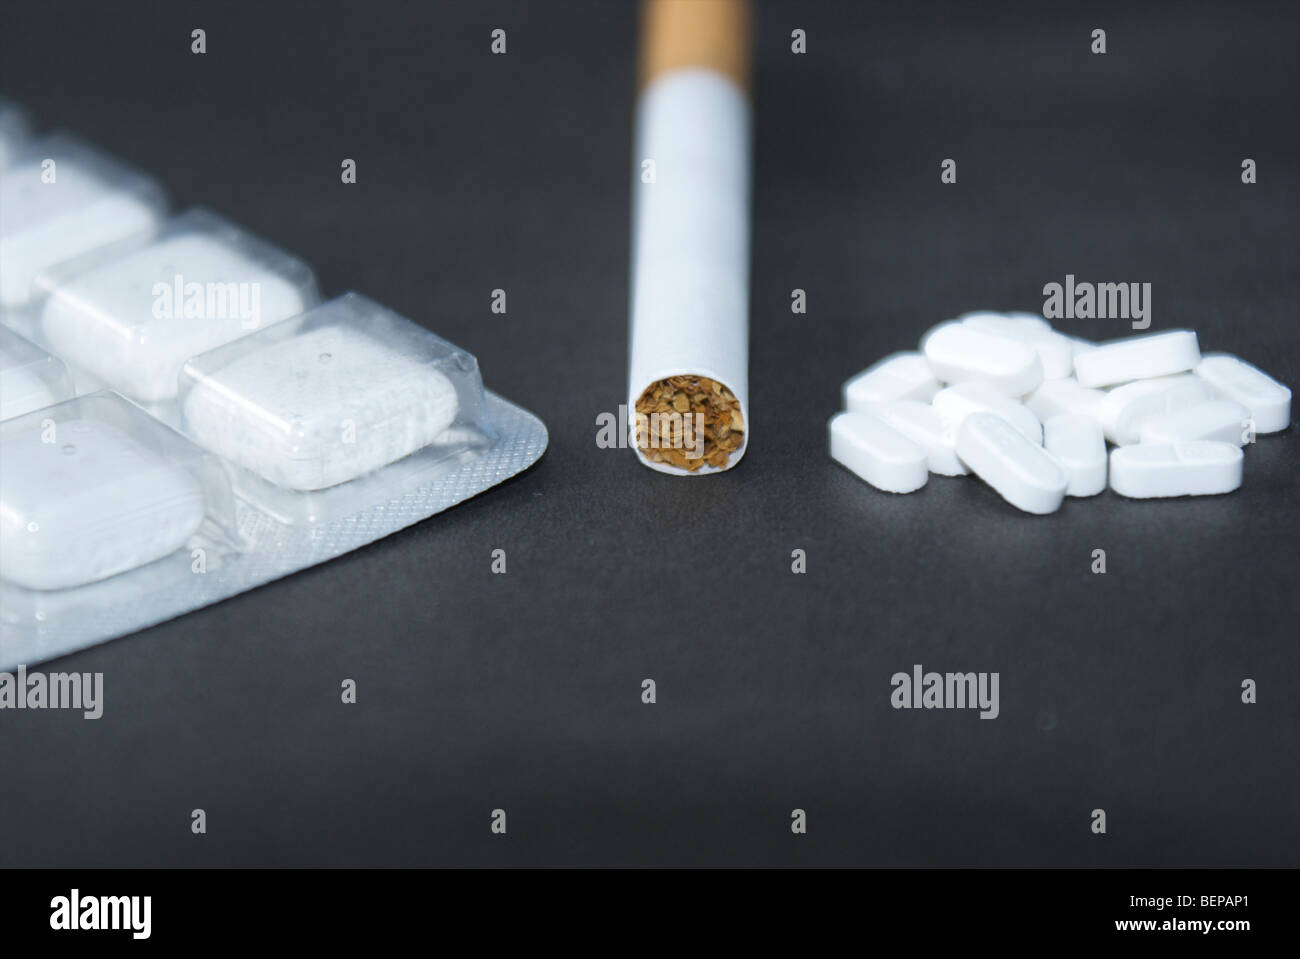 A cigarette, nicotine gum and anti-smoking pills on a black background. Different options for quitting smoking. - Stock Image